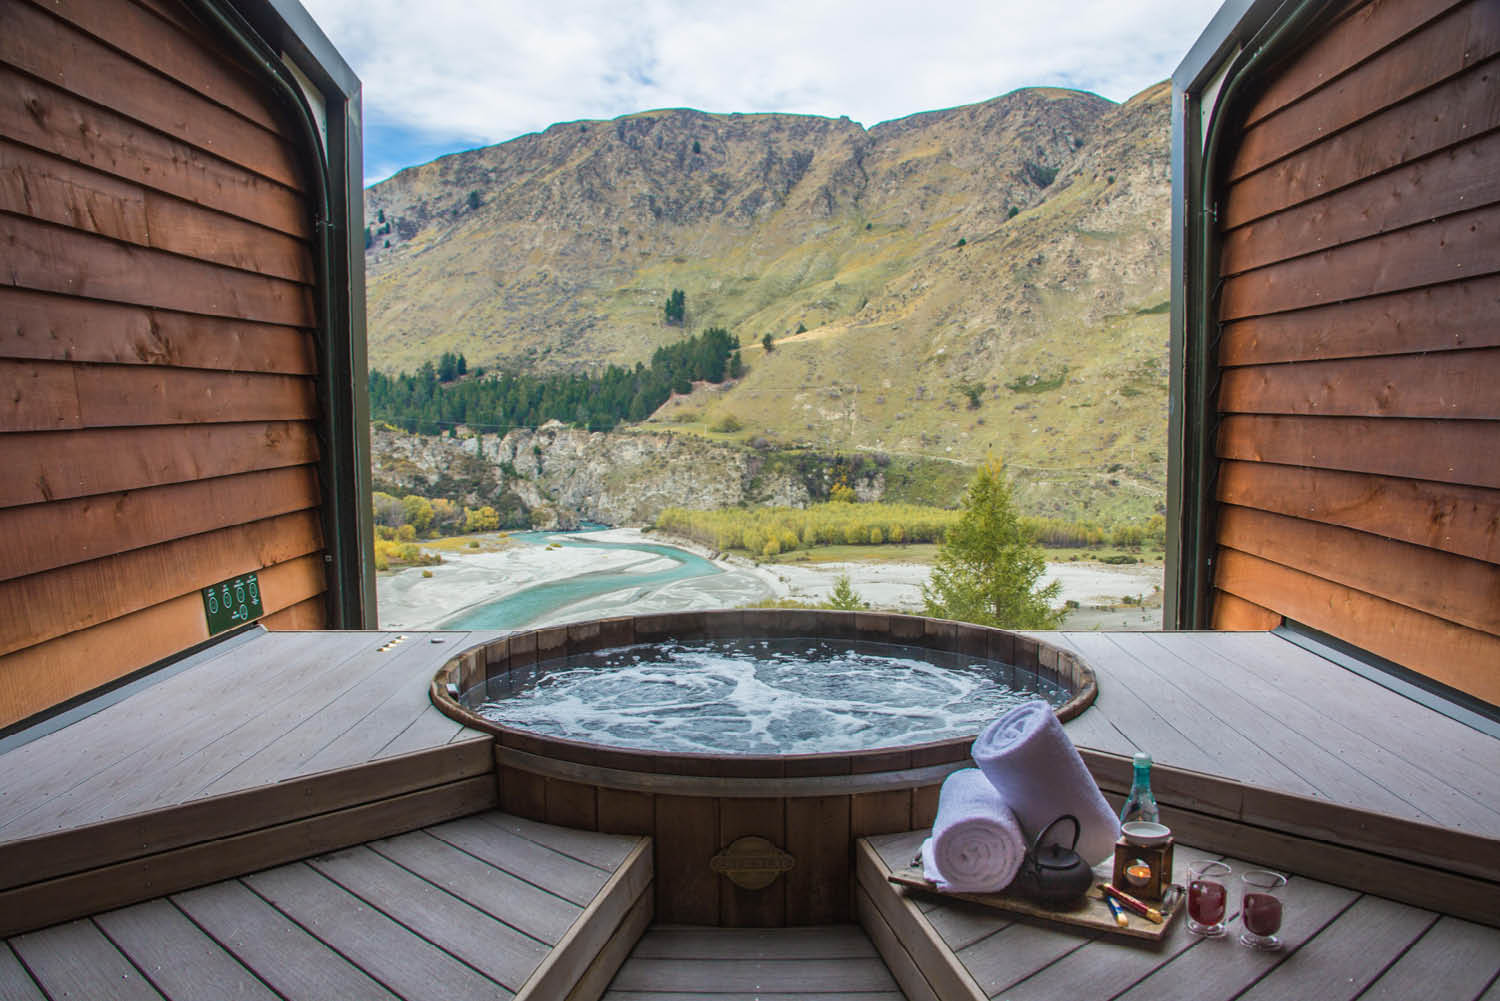 A look inside THOSE picturesque New Zealand Onsen hot tubs